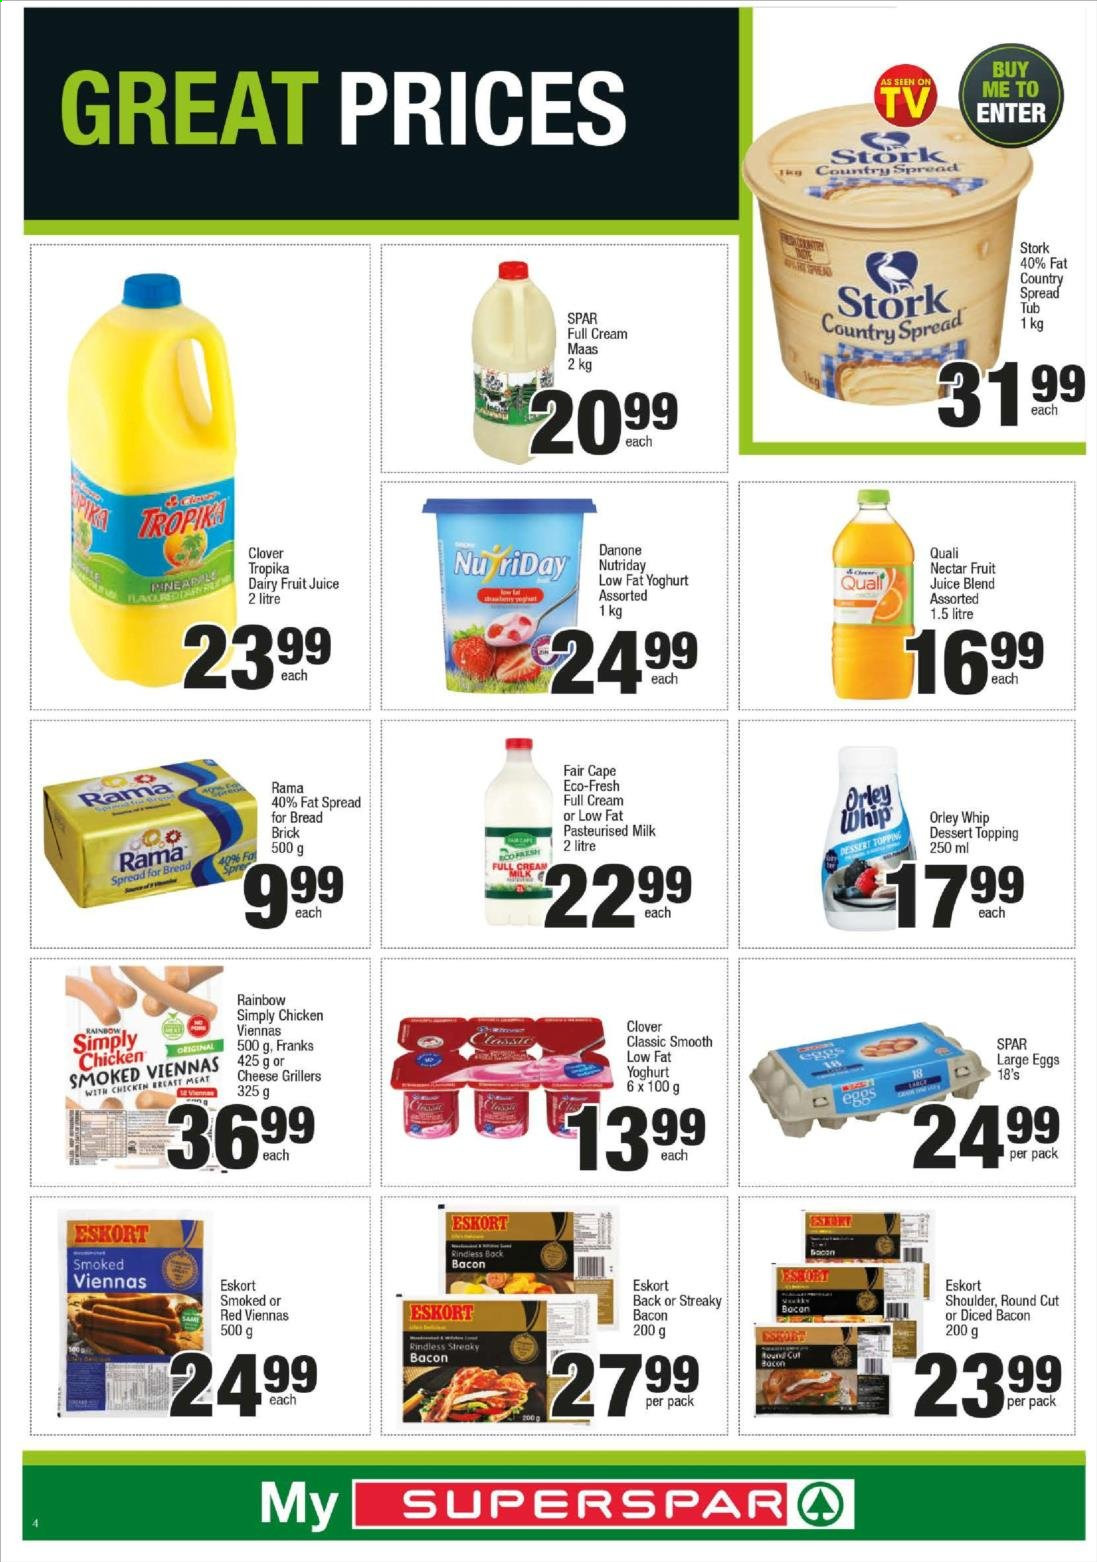 SPAR catalogue  - 04.20.2020 - 04.26.2020. Page 4.